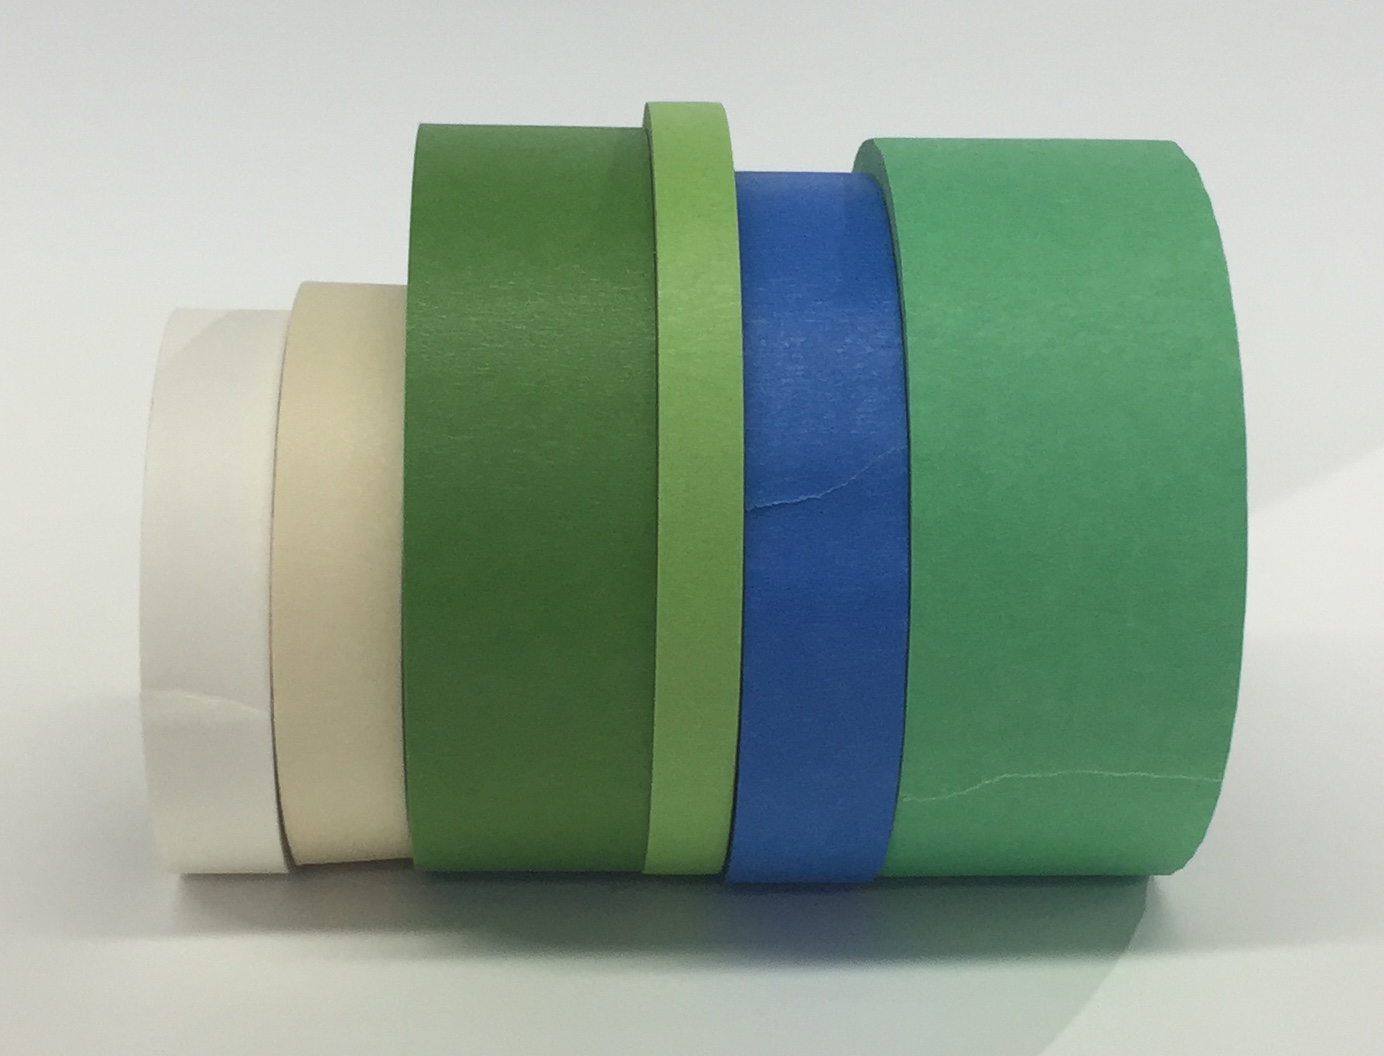 An assortment of different masking and low-tack painter's tapes.